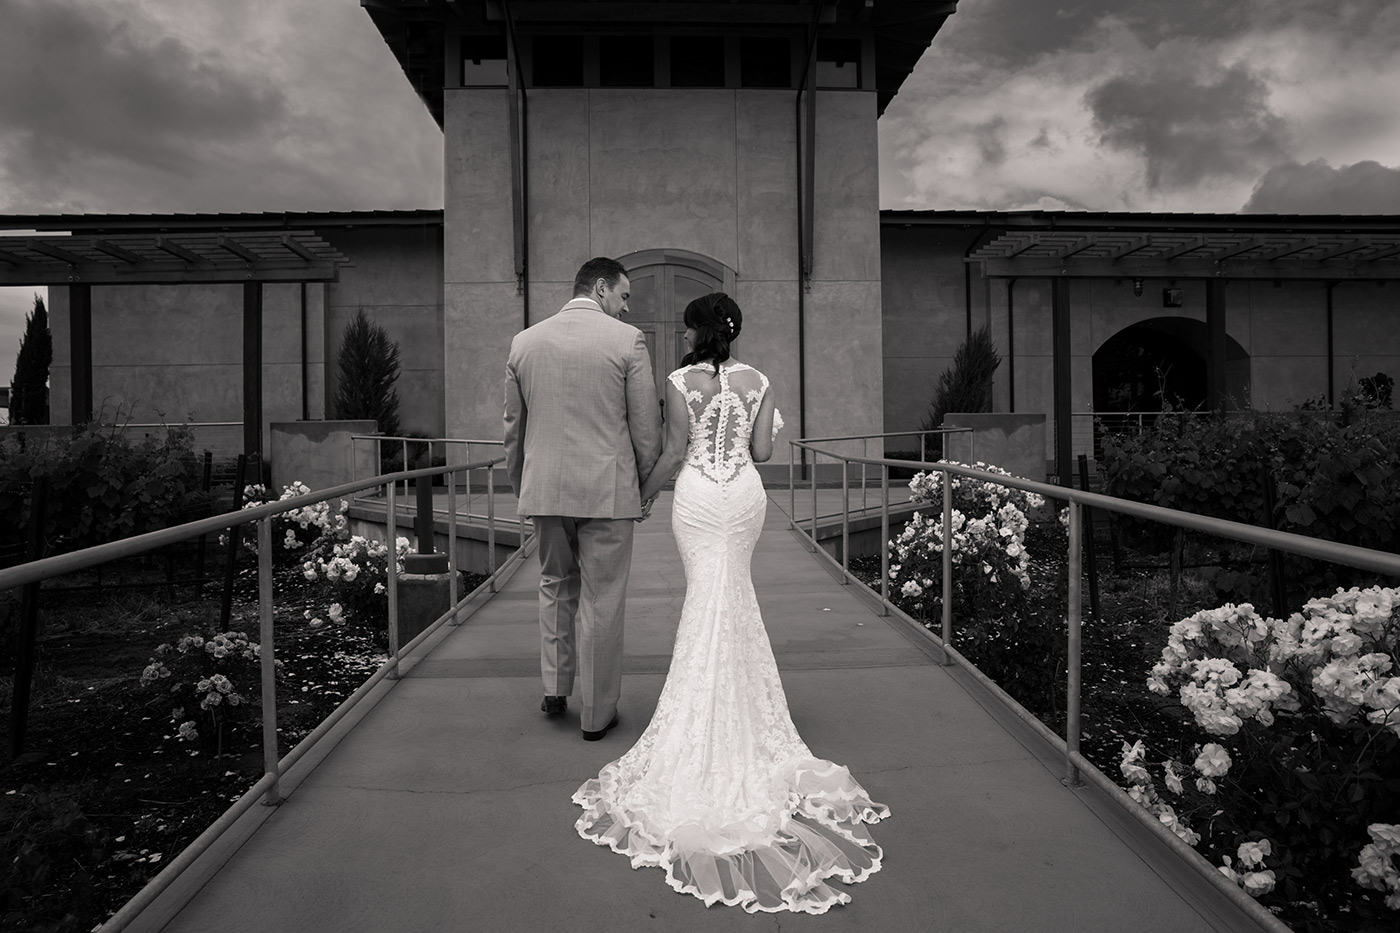 Spectacular views of the historic Livermore Valley Wine Country, old world hospitality and award winning food and wine are just a few of the reasons to choose Garré wedding venue for your special day. Whether your wedding is at the Bella Rosa or the Martinelli Event Center you will have a gorgeous day